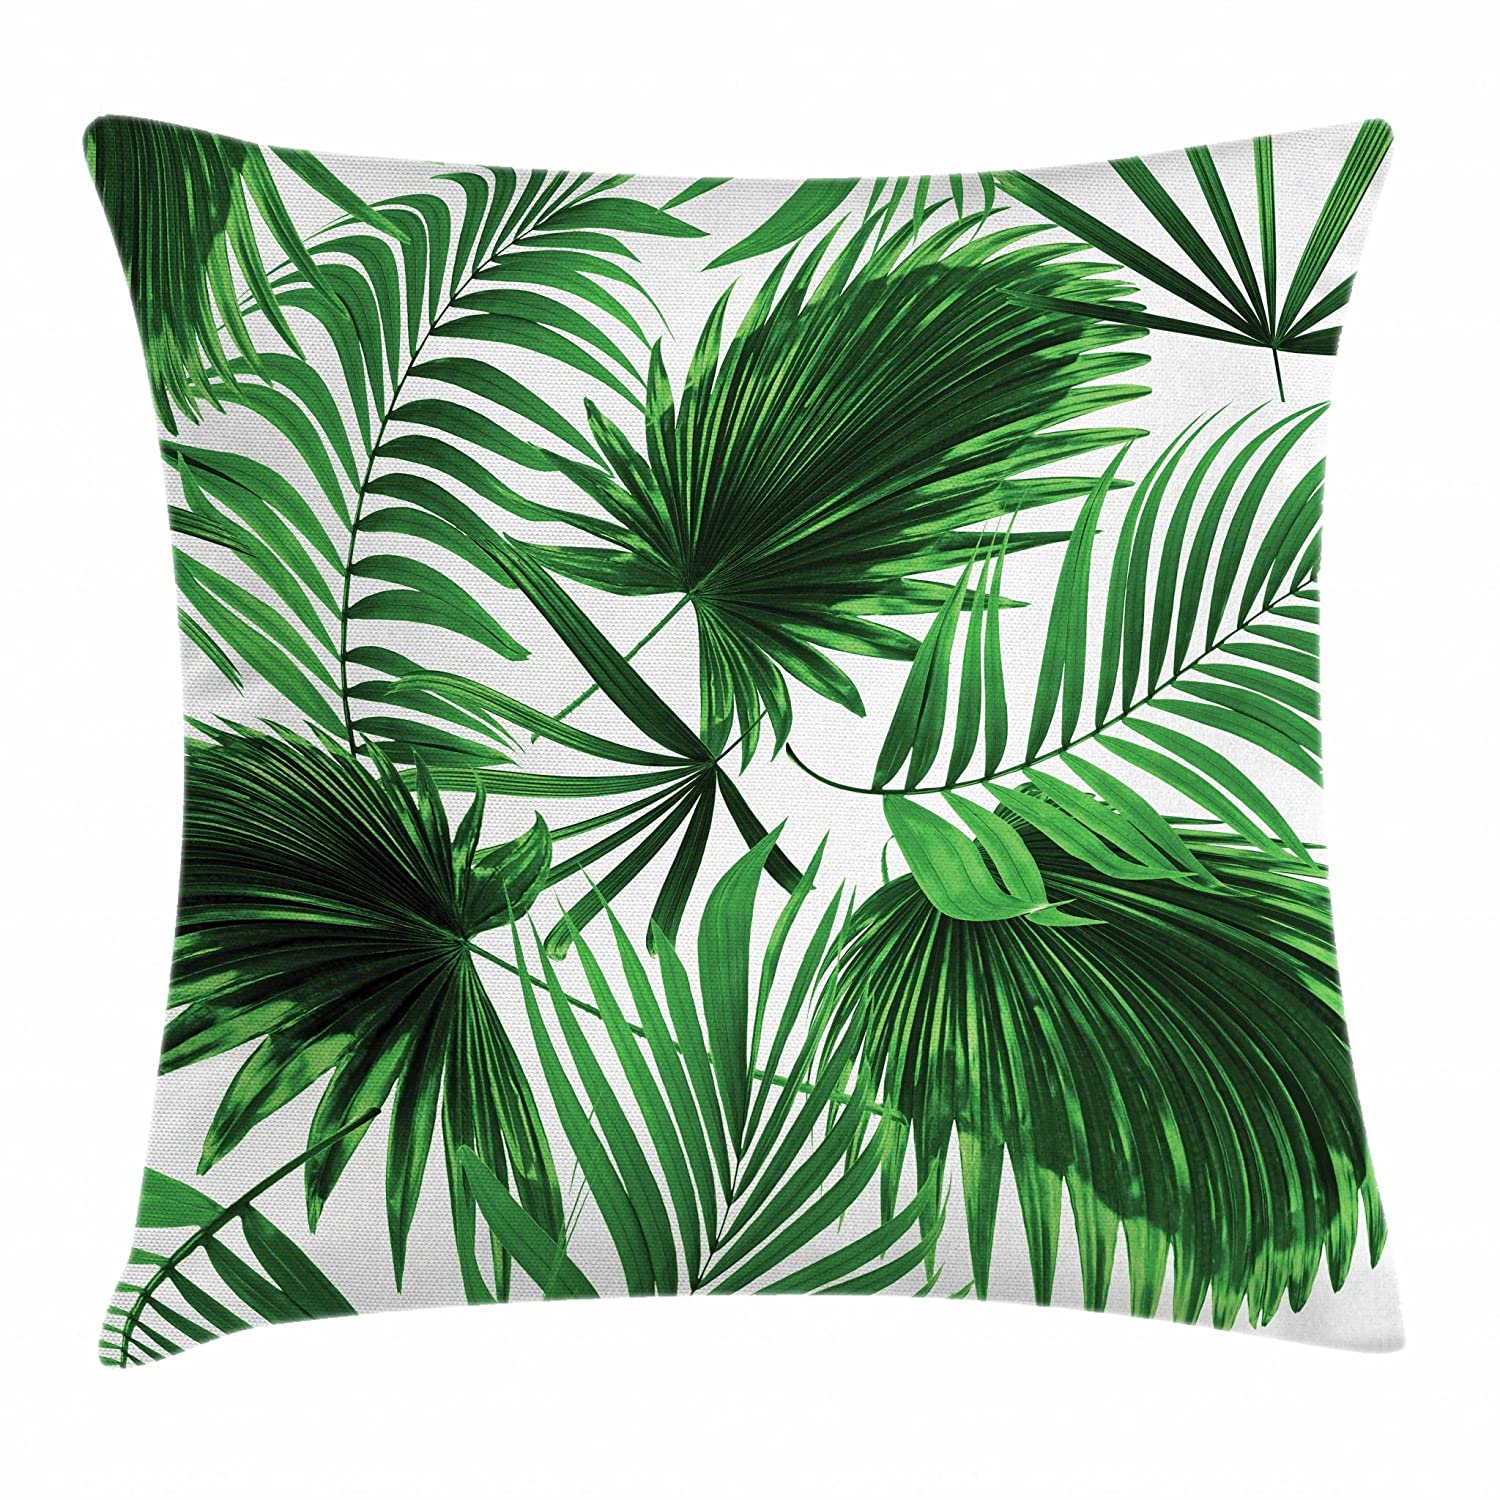 Stupendous Ambesonne Palm Leaf Throw Pillow Cushion Cover Realistic Vivid Leaves Of Palm Tree Growth Ecology Lush Botany Themed Print Decorative Square Accent Ocoug Best Dining Table And Chair Ideas Images Ocougorg